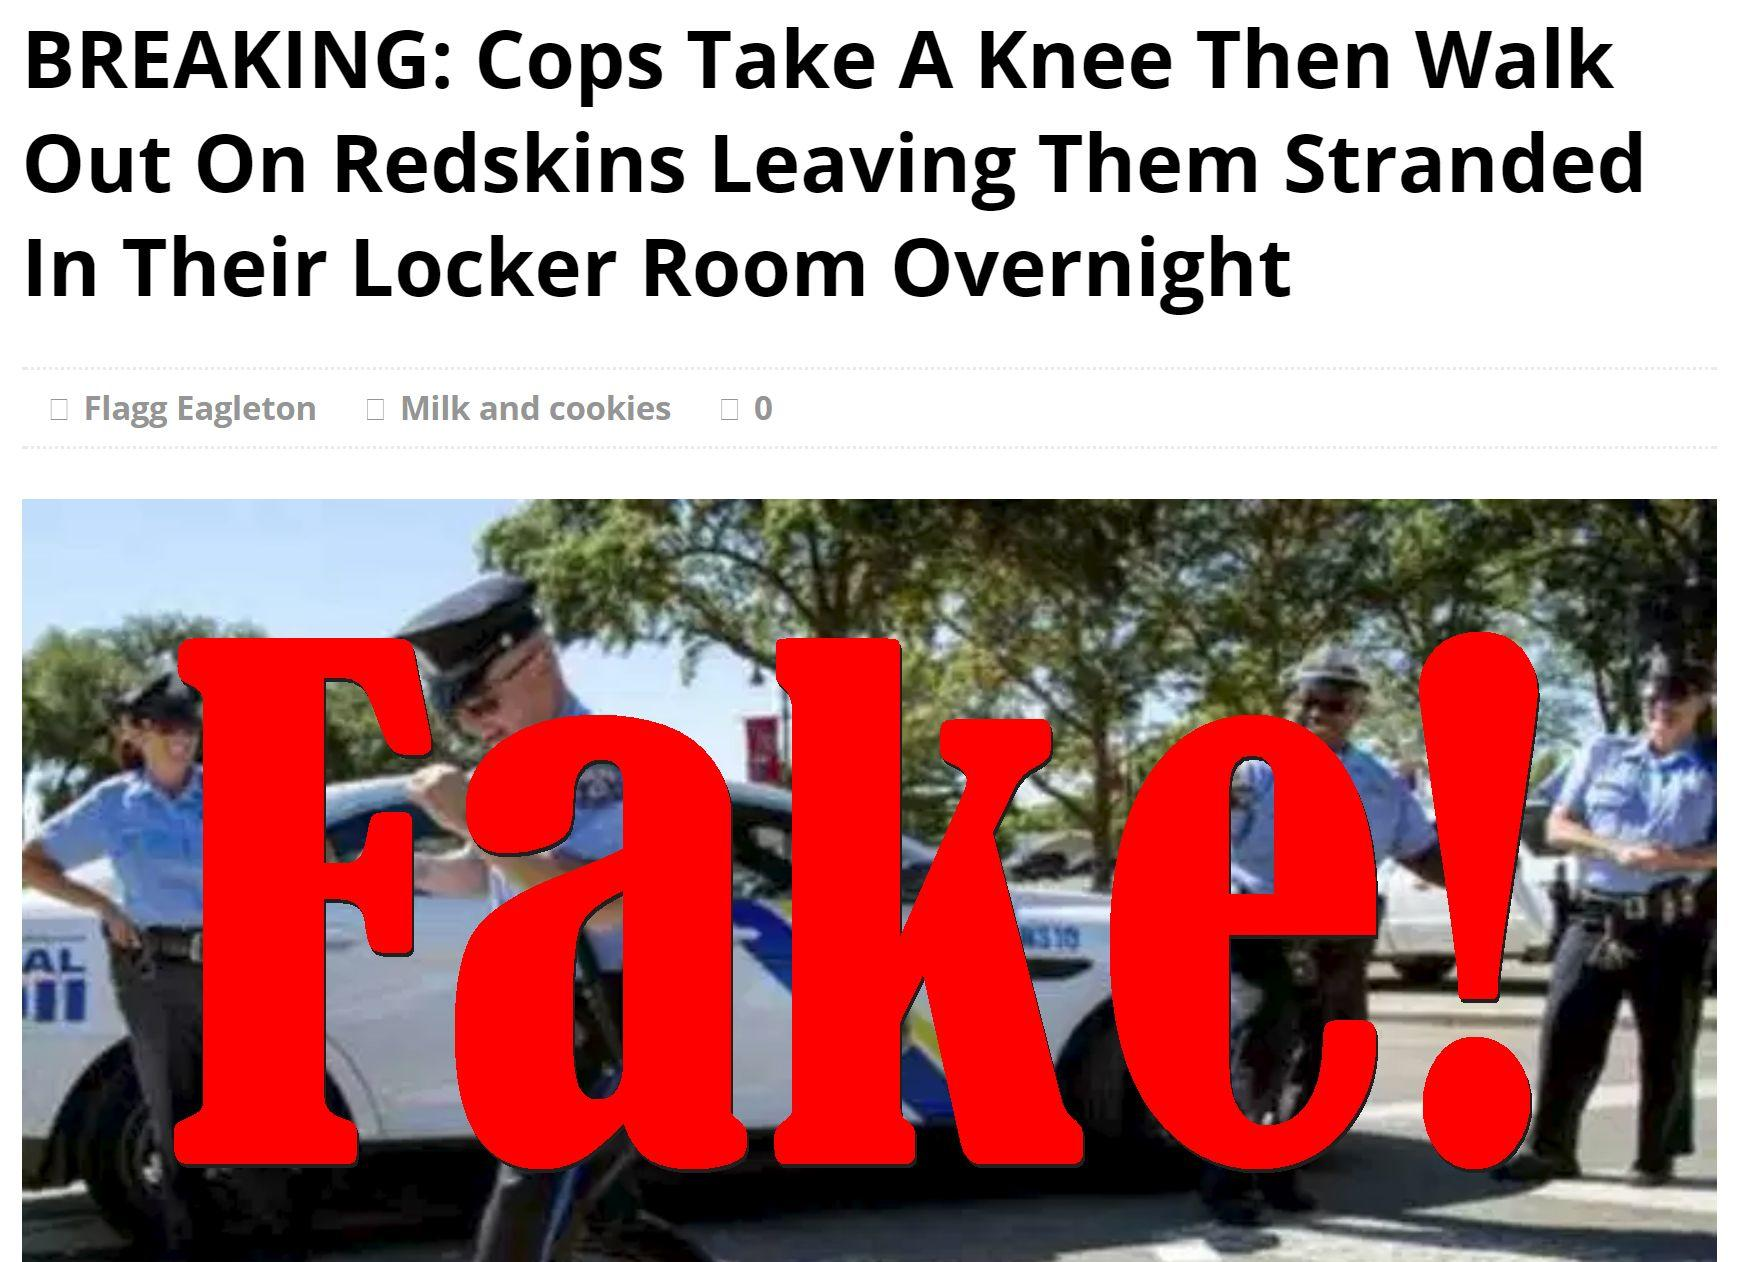 Fake News: Cops Did NOT Take A Knee, Didn't Walk Out On Redskins Leaving Them Stranded In Their Locker Room Overnight